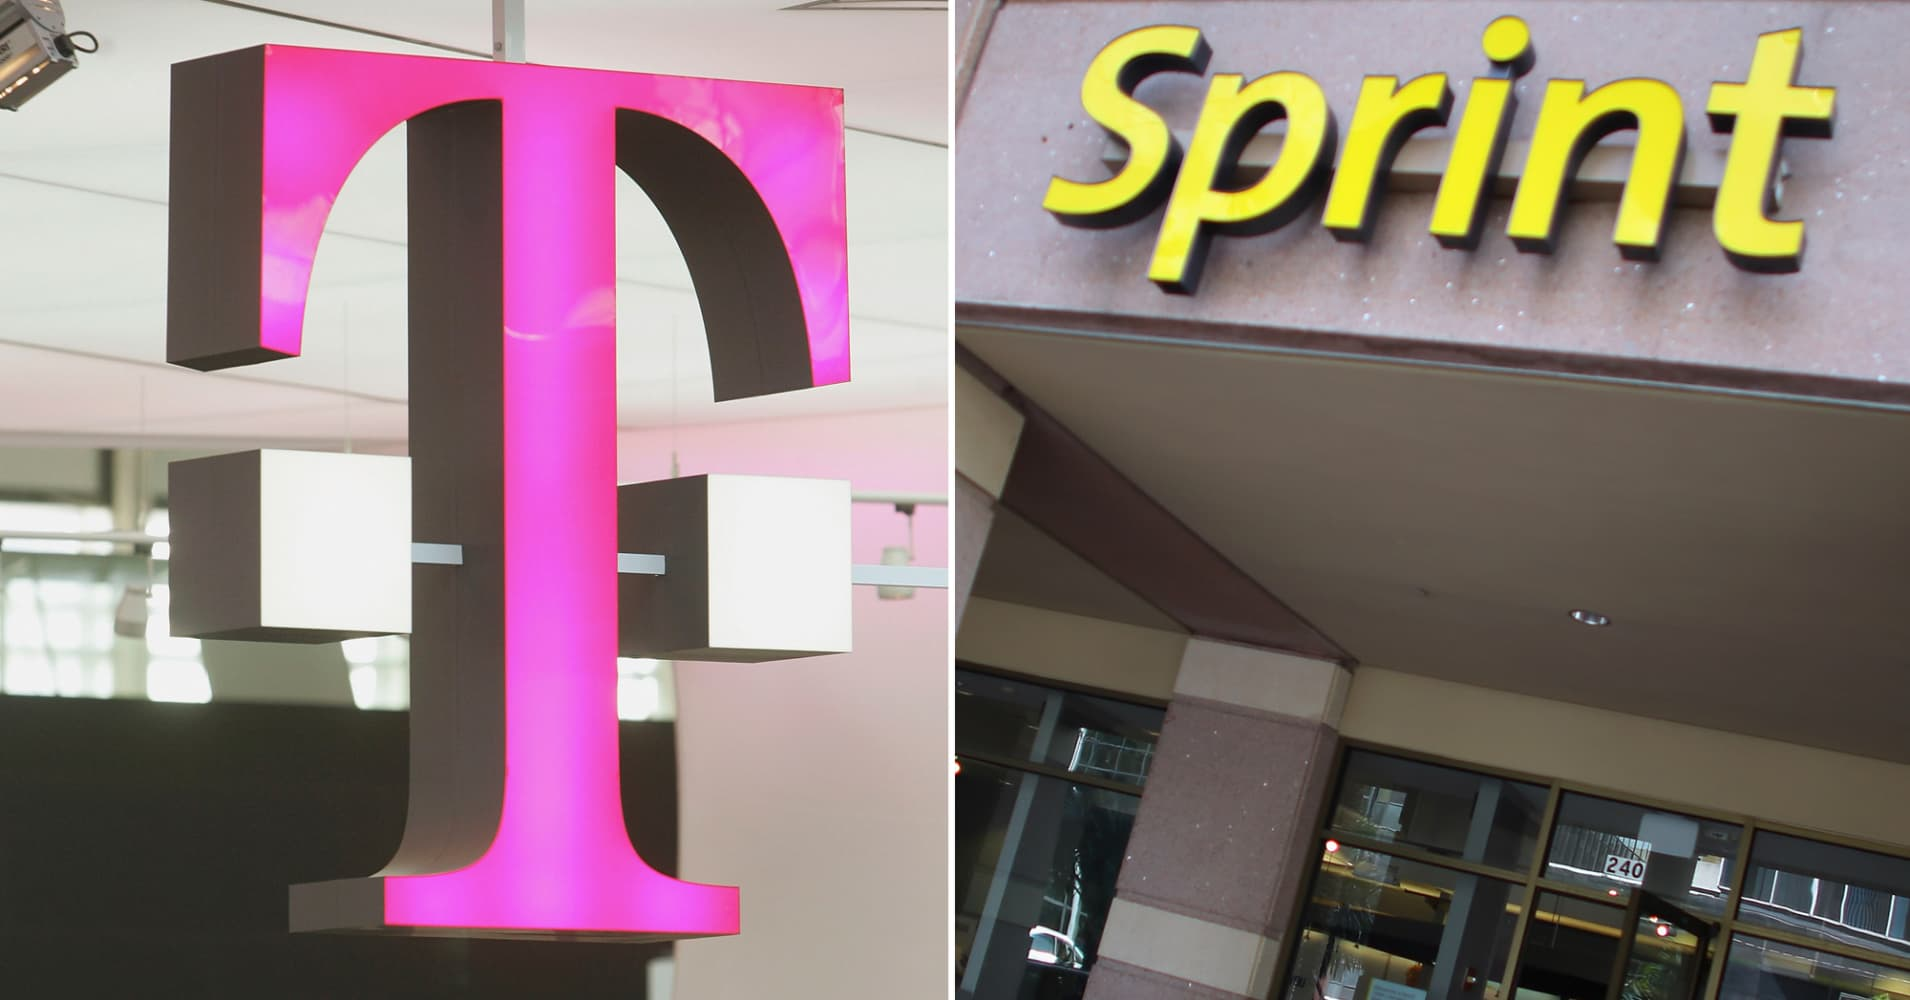 Sprint Stock Quote Tmobile Sprint Close To Agreeing Deal Terms Sources